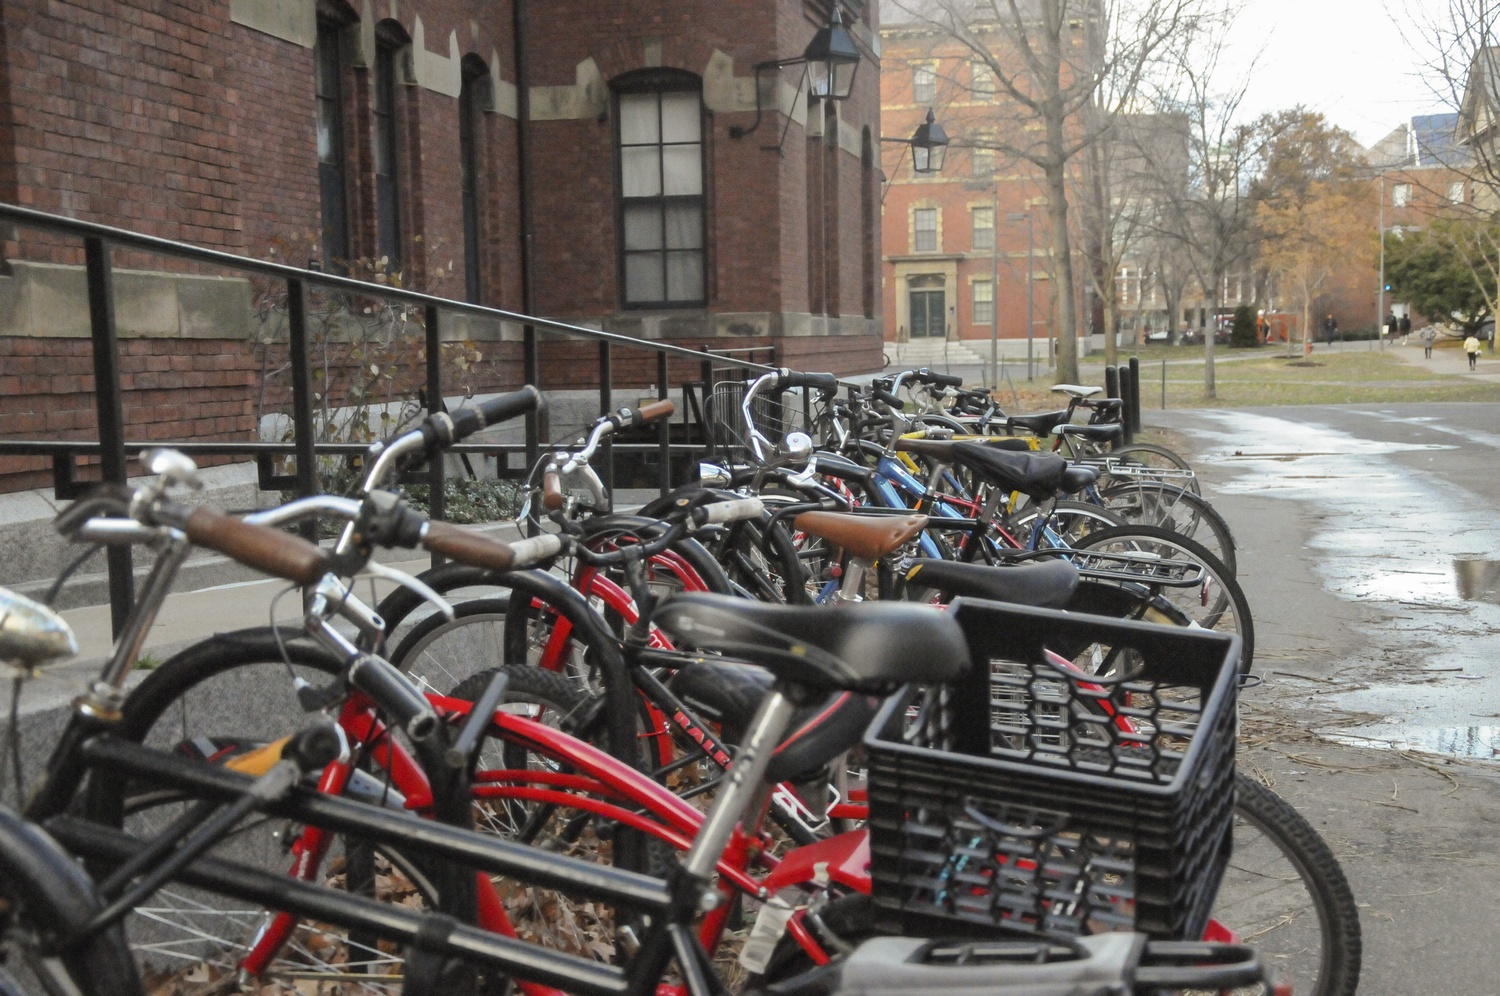 Student bikes saturate the bike racks outside of Weld in the middle of winter.